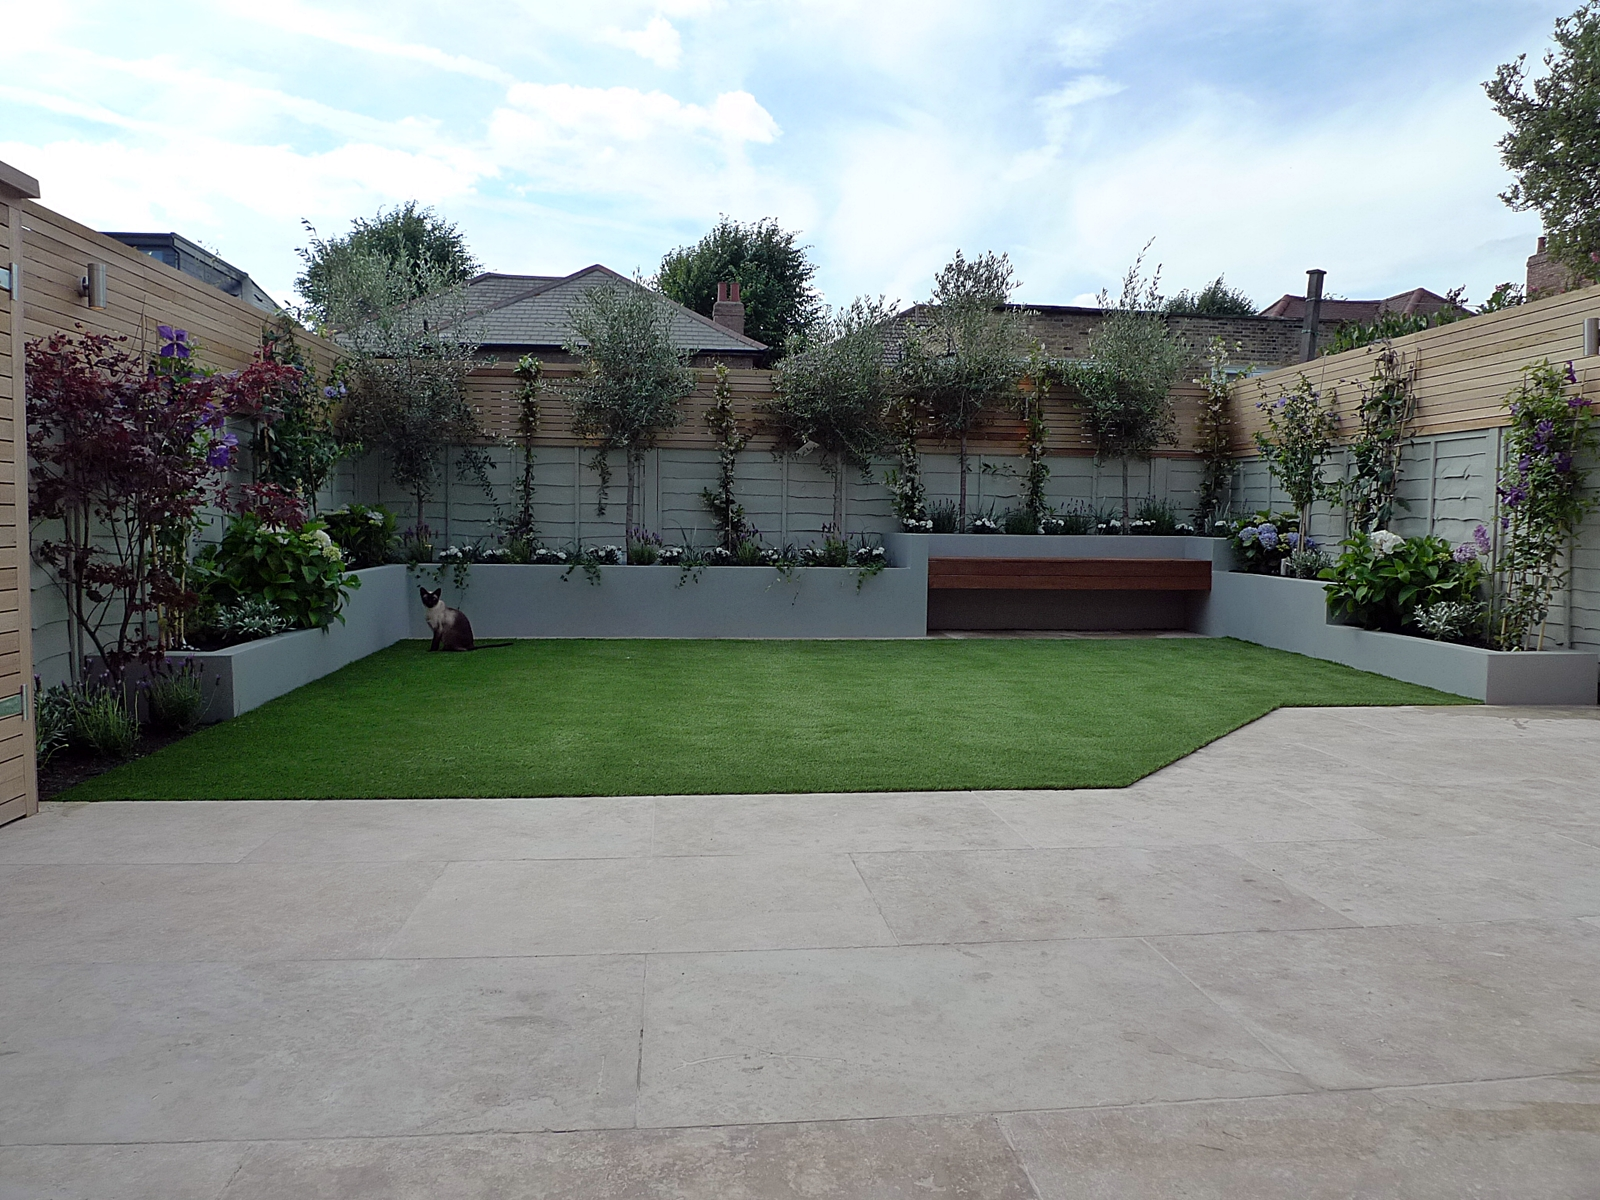 contemporary modern garden design ideas london anewgarden design and build clapham chelsea balham battersea fulham